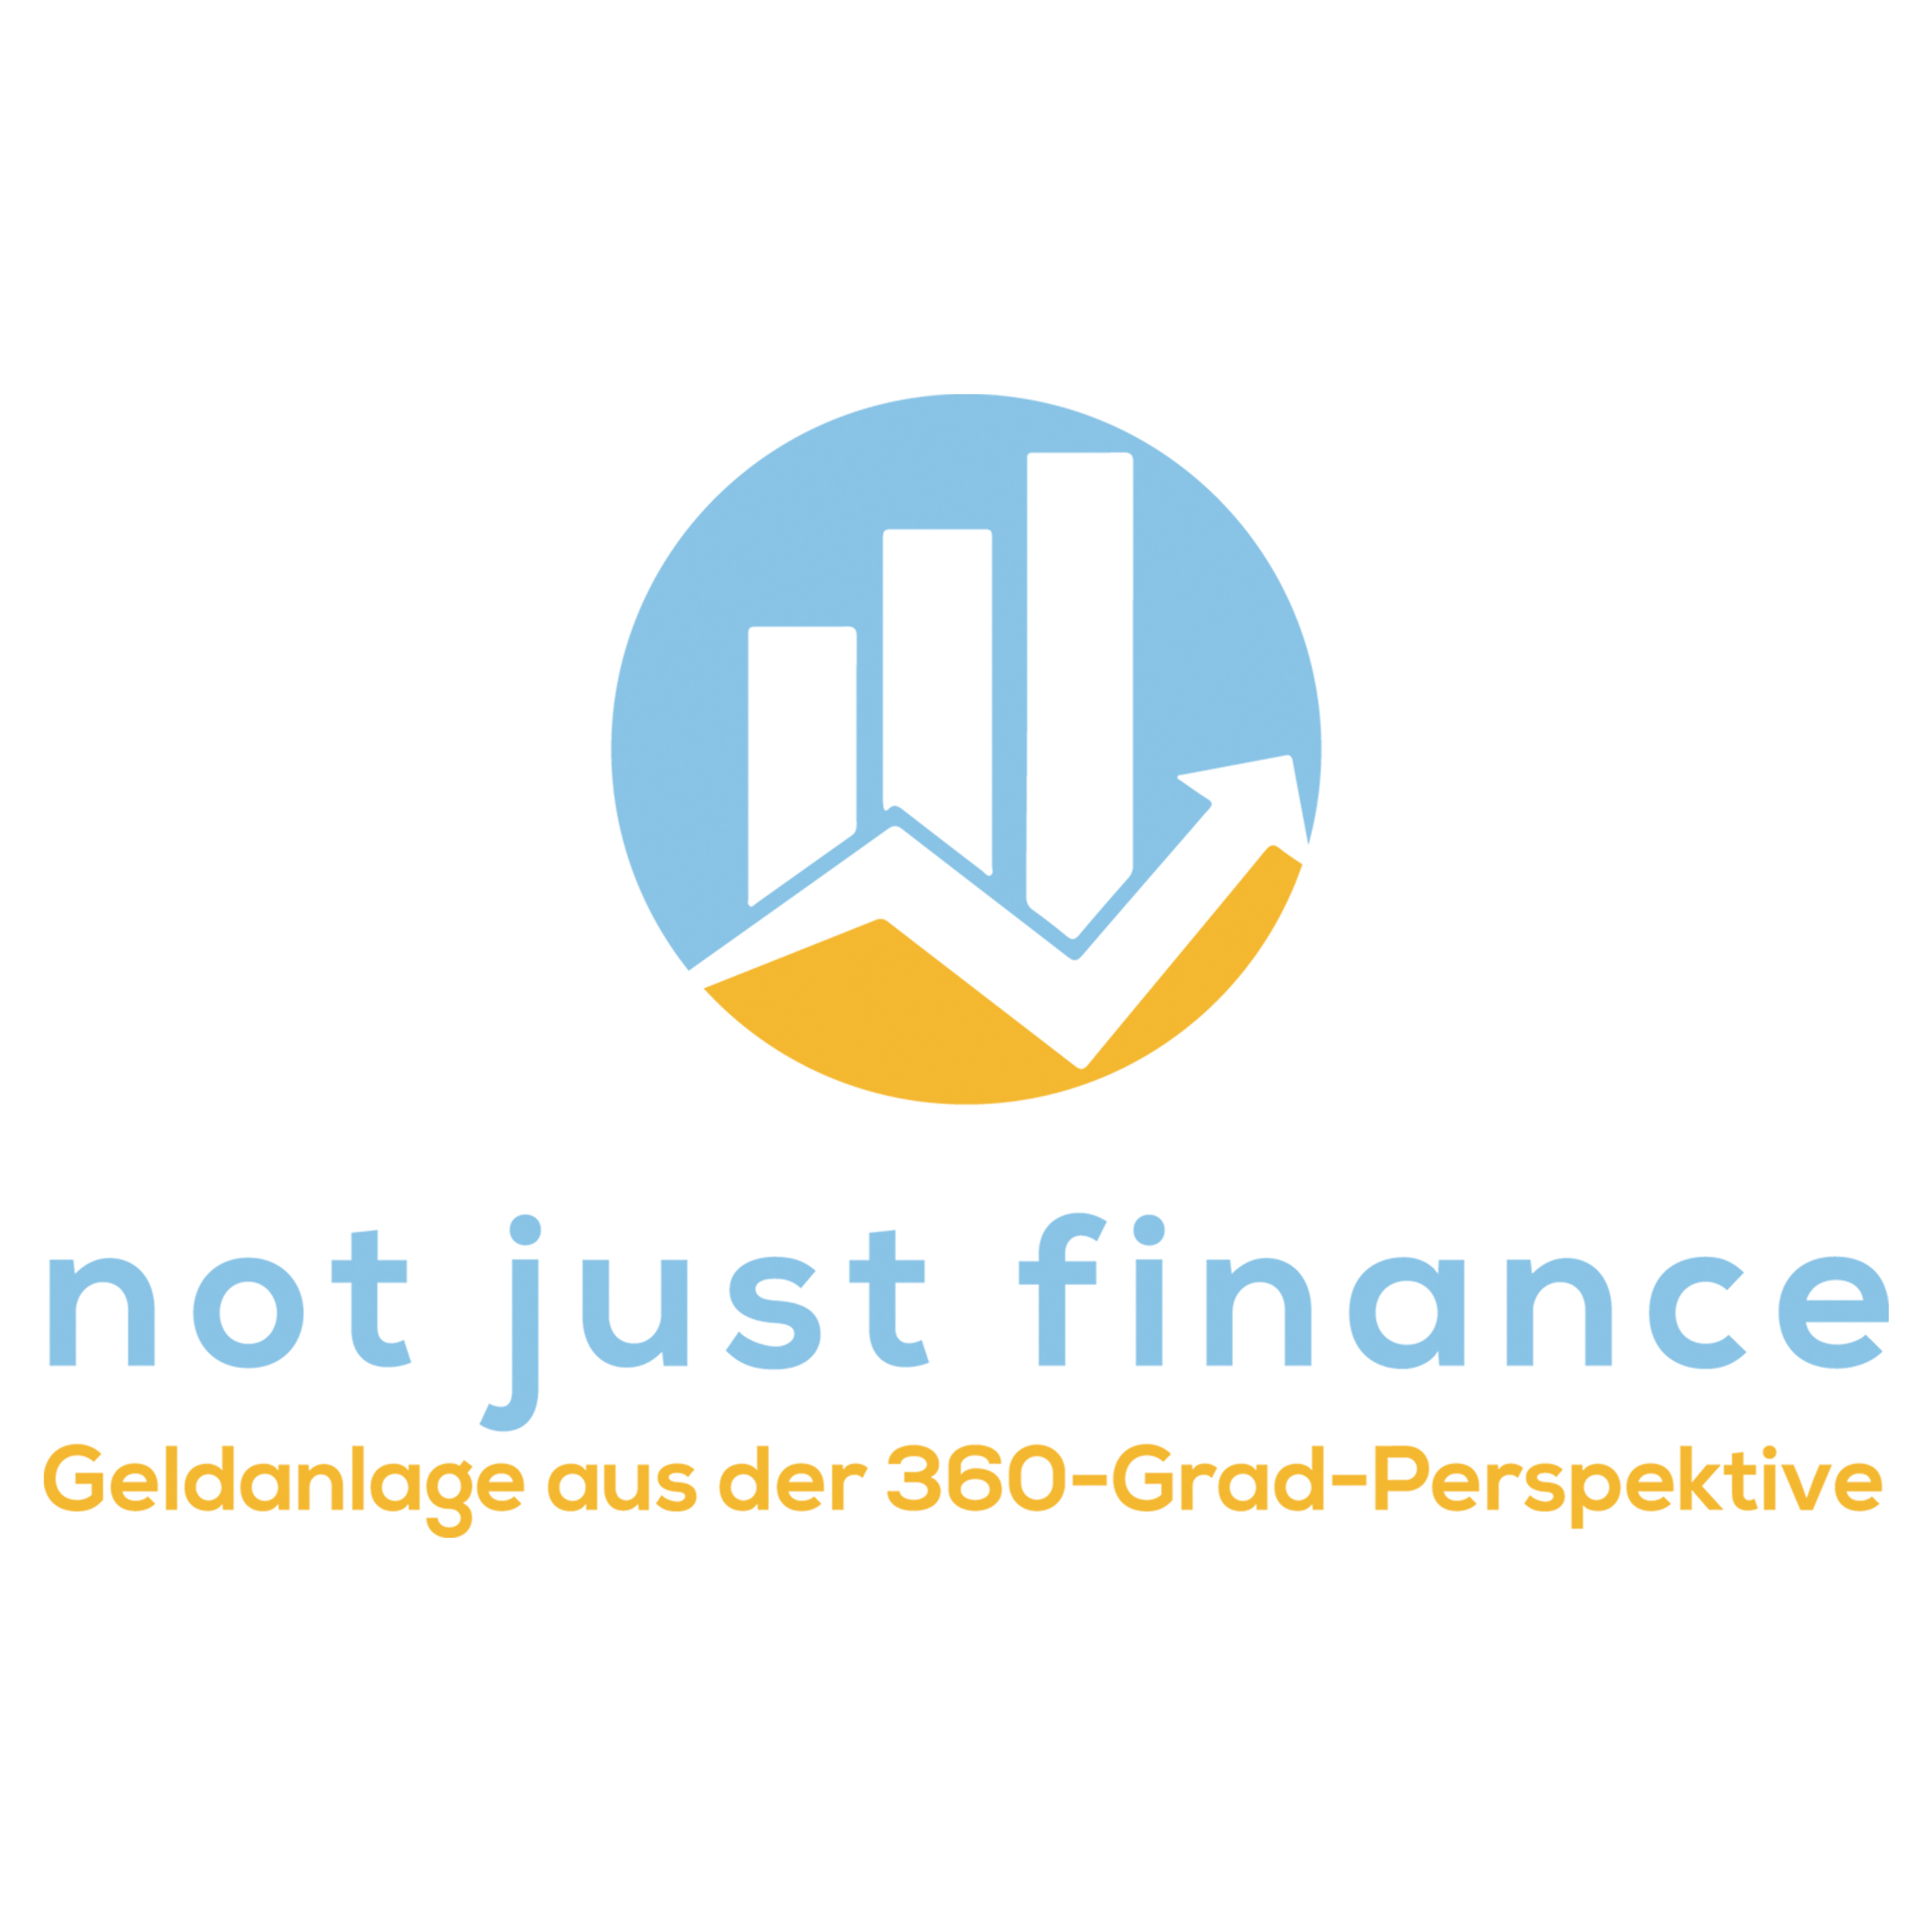 not just finance